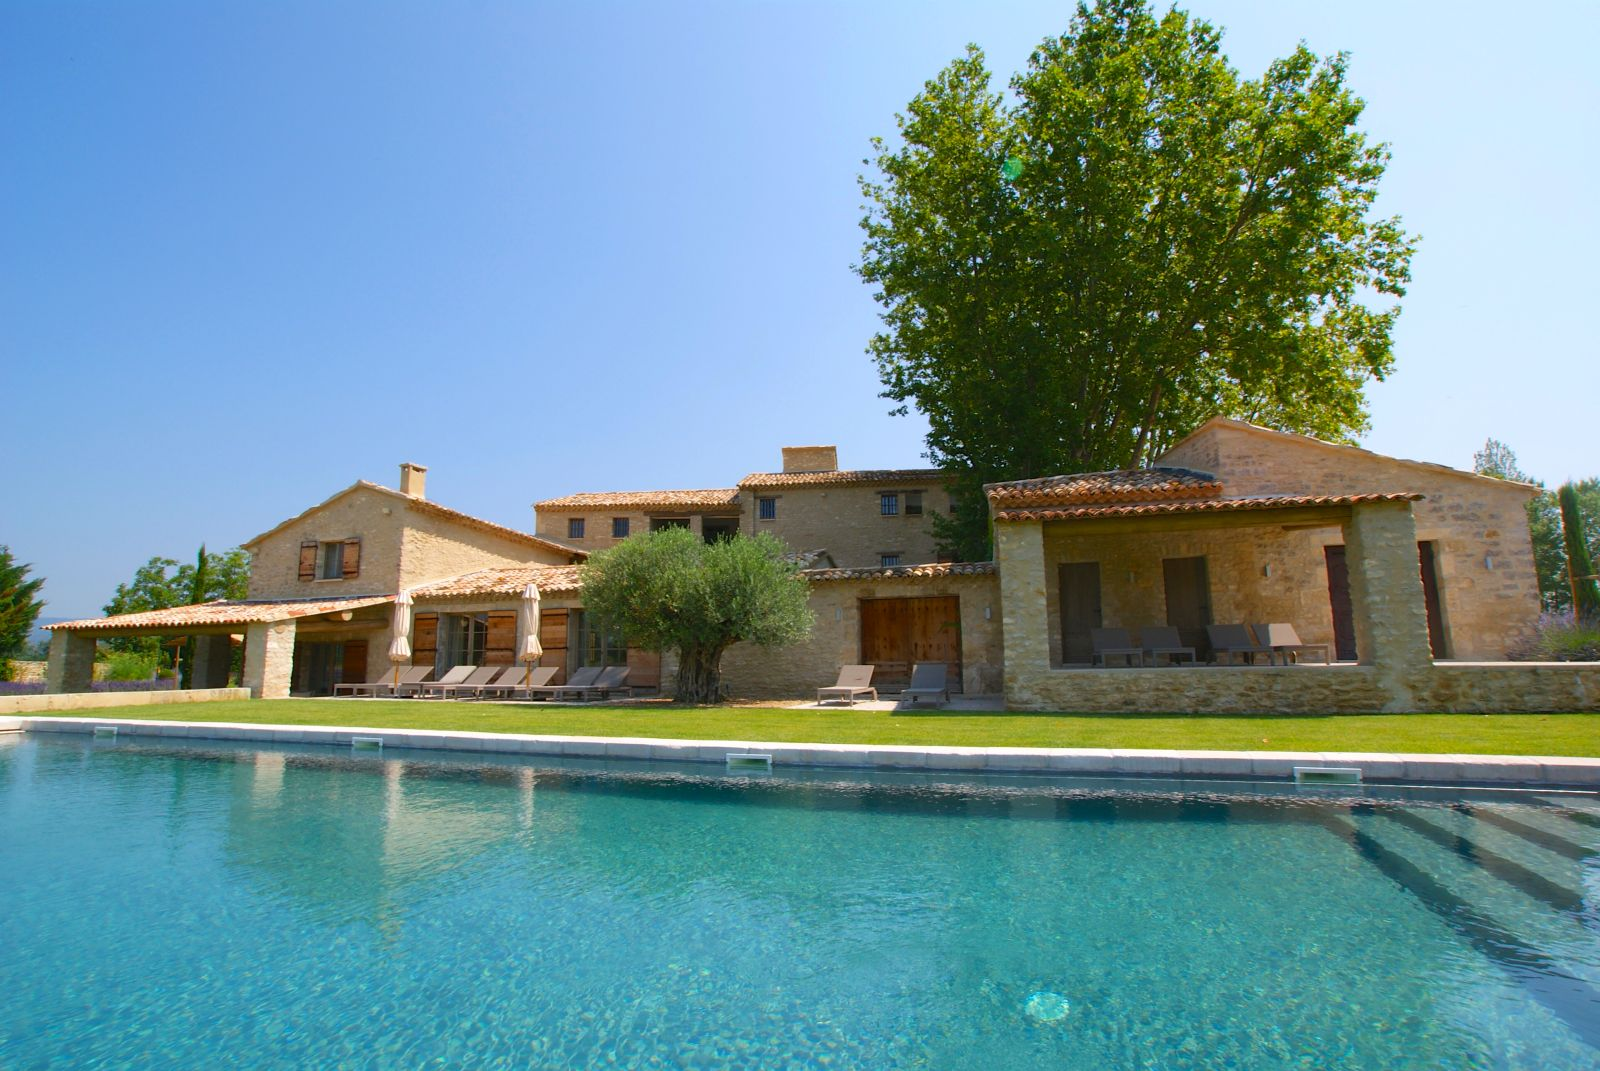 Provence Luberon Luxury Villa Rentals With Heated Private Pool Hammam  Jacuzzi ...